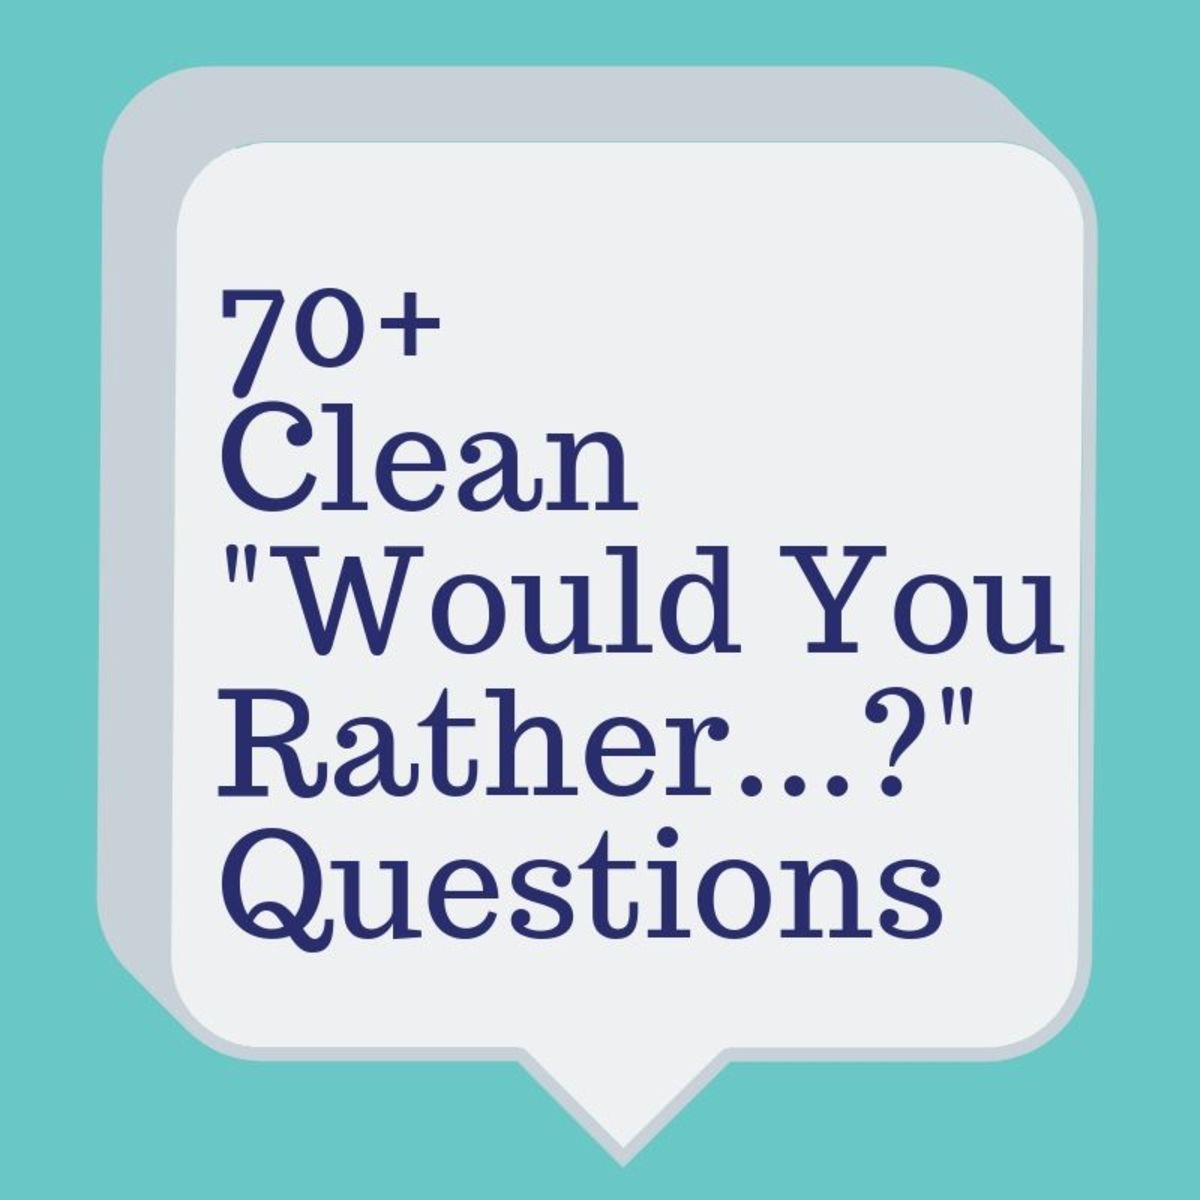 """""""Would you rather...?"""" is a fun game to play with friends."""